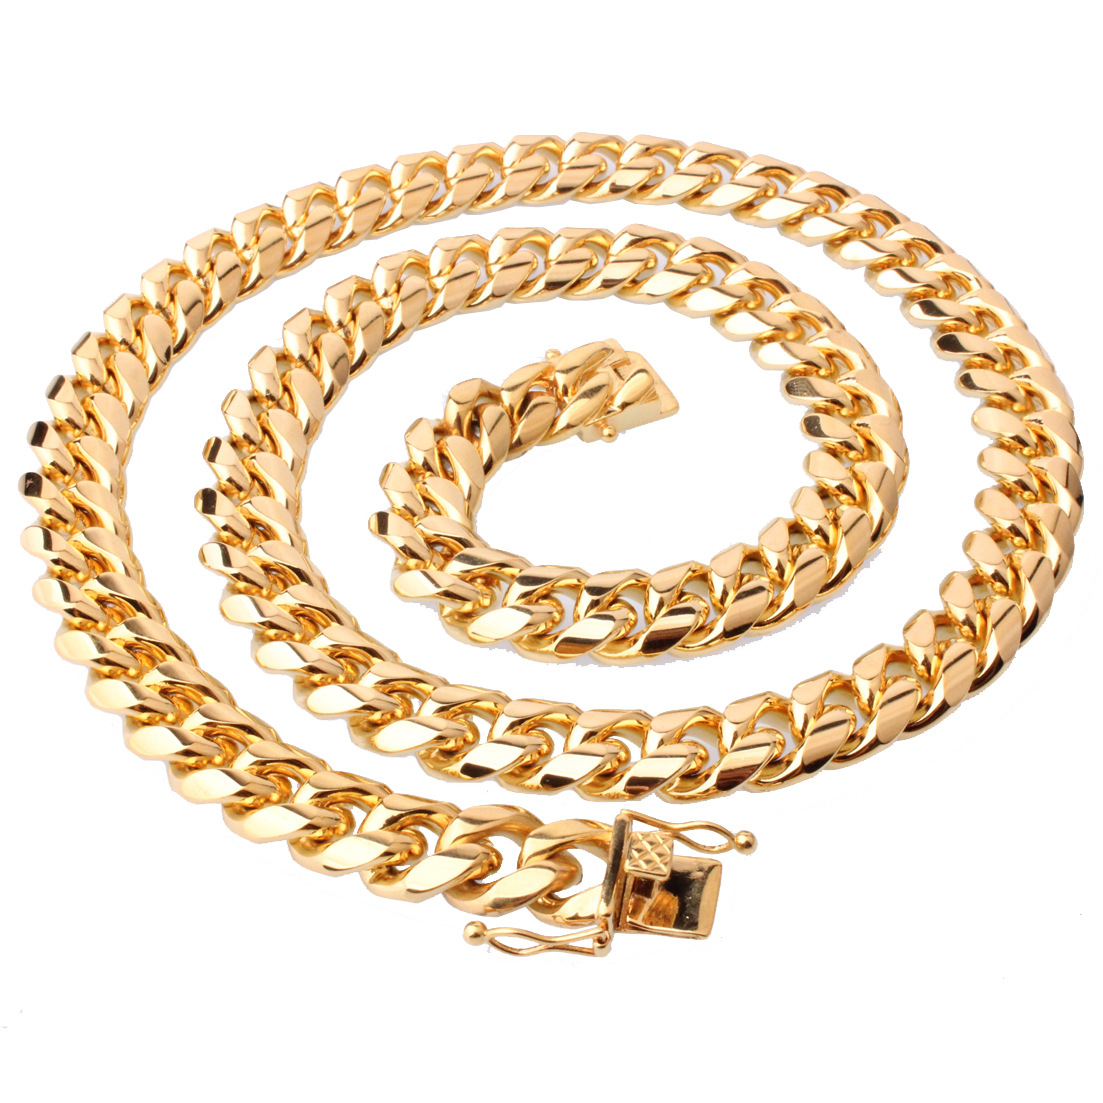 Funky Chain Titanium Steel Necklace for Street Style Looks